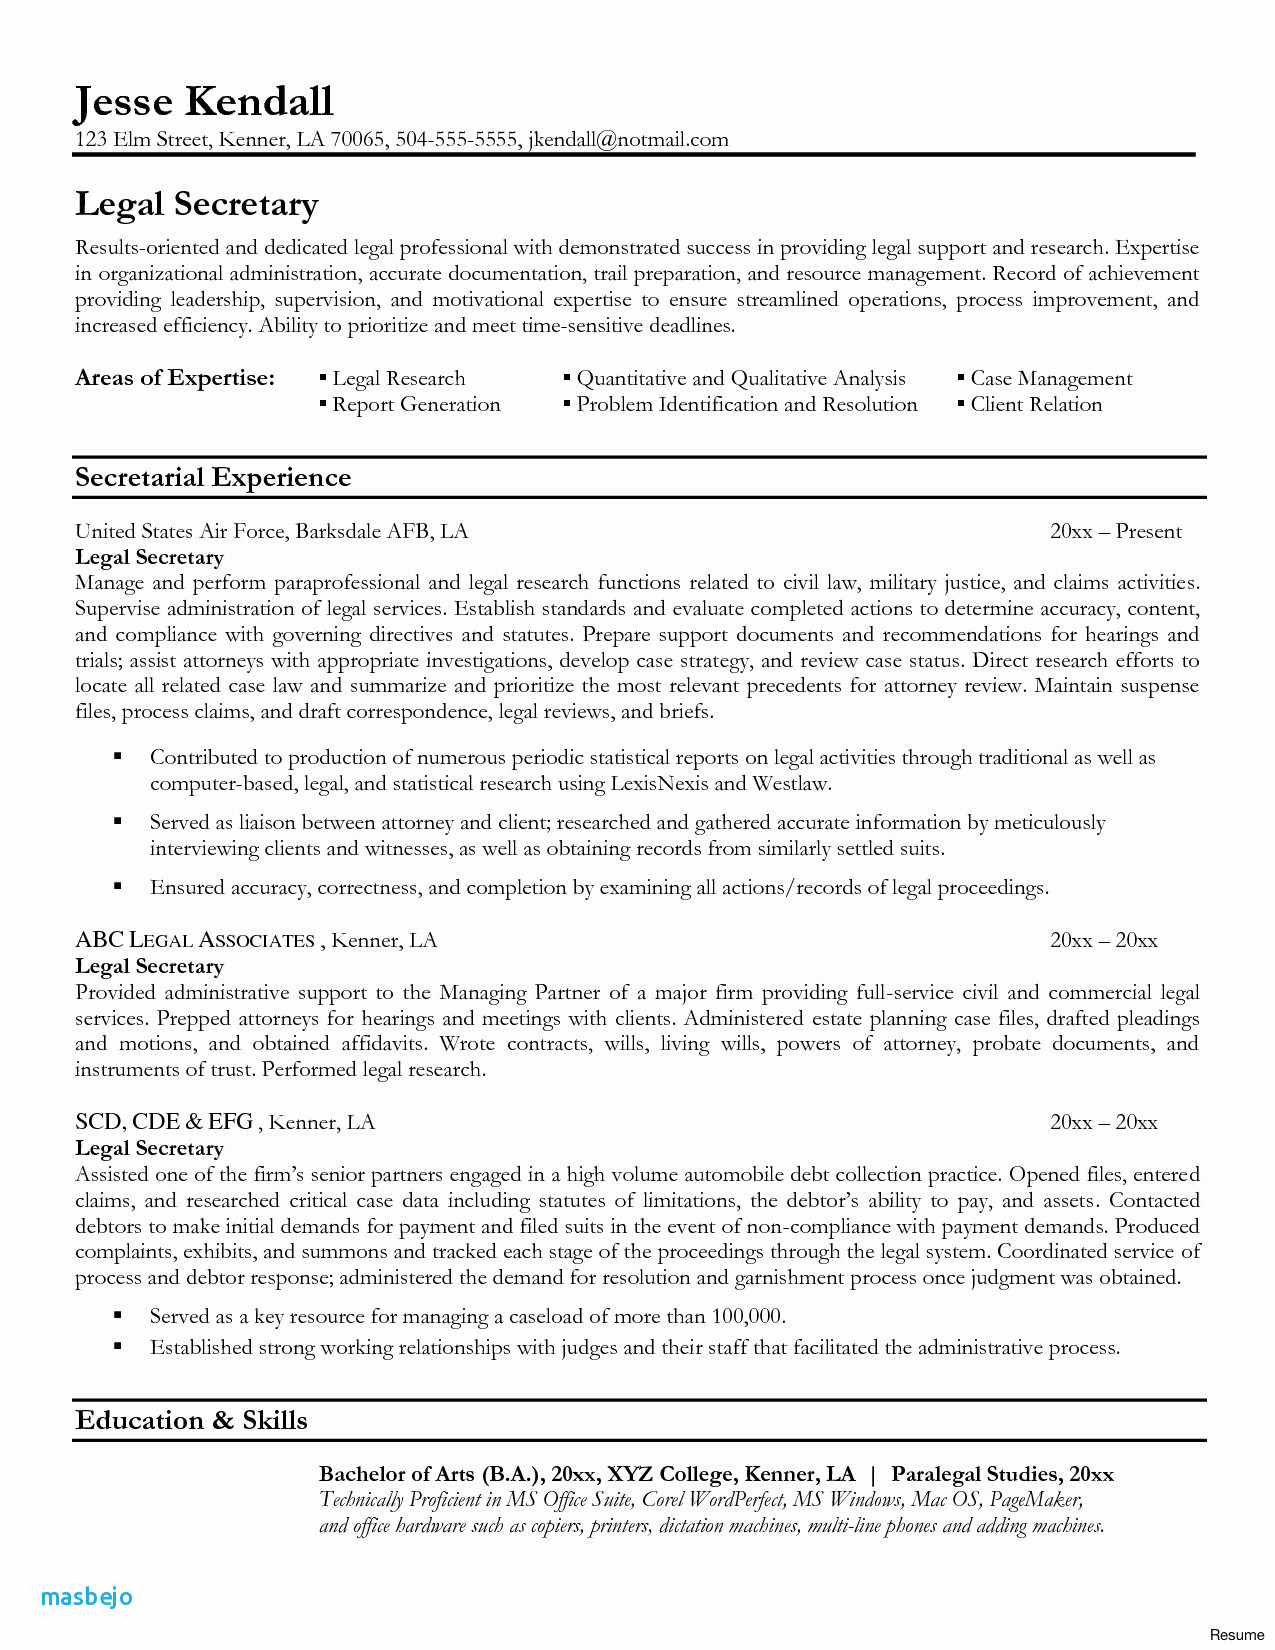 Legal assistant Resume - Legal Resume Examples Law Student Resume Template Best Resume